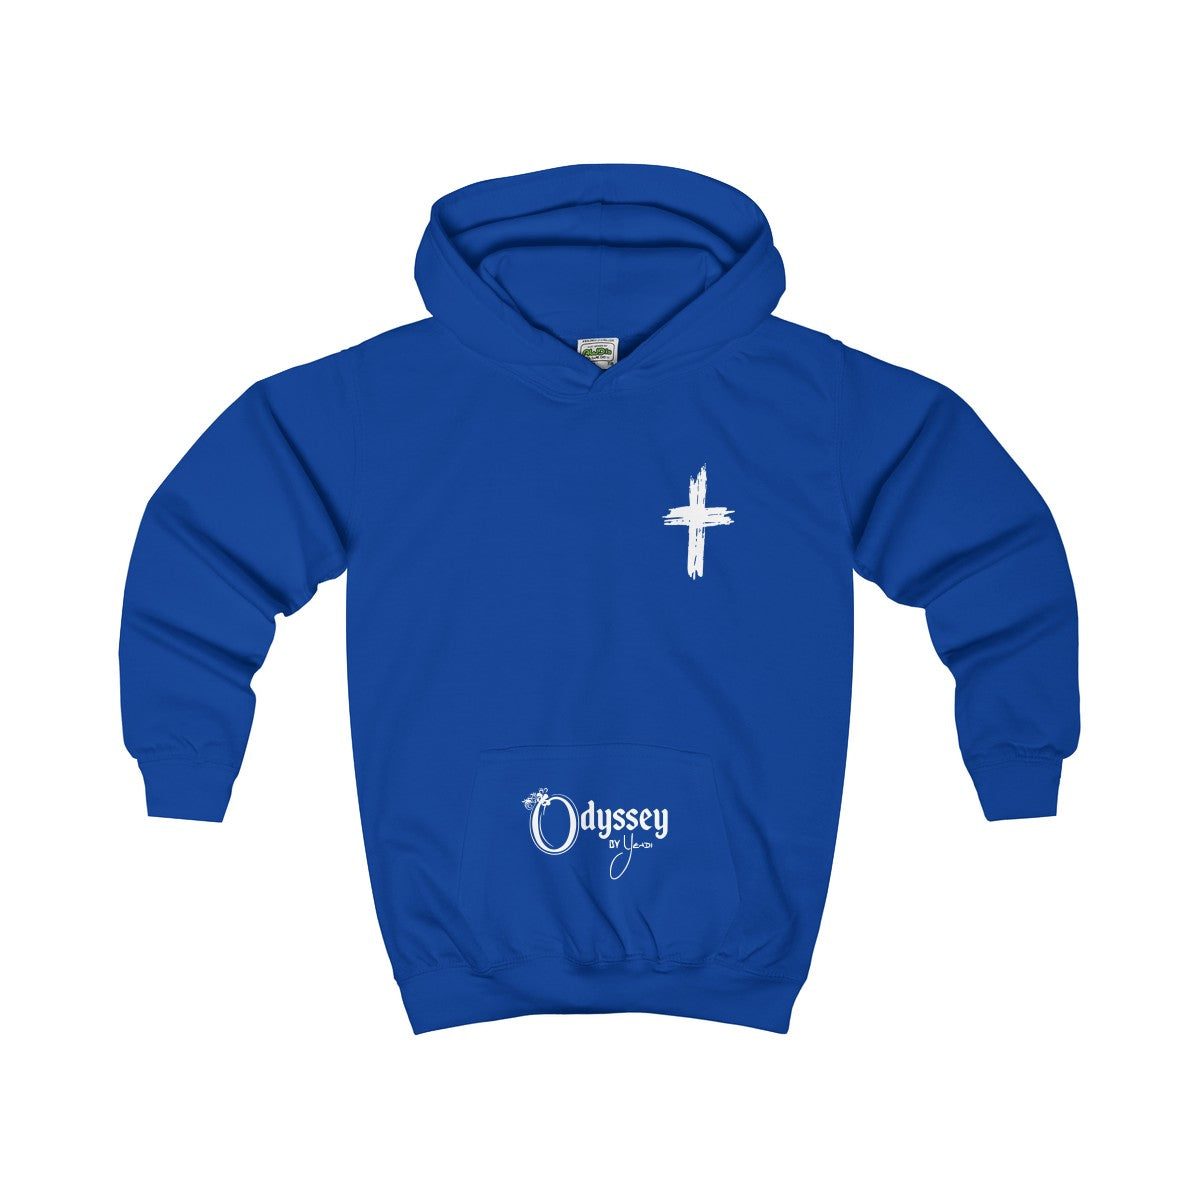 Odyssey Cross My Heart Kids Hoodie - Dark